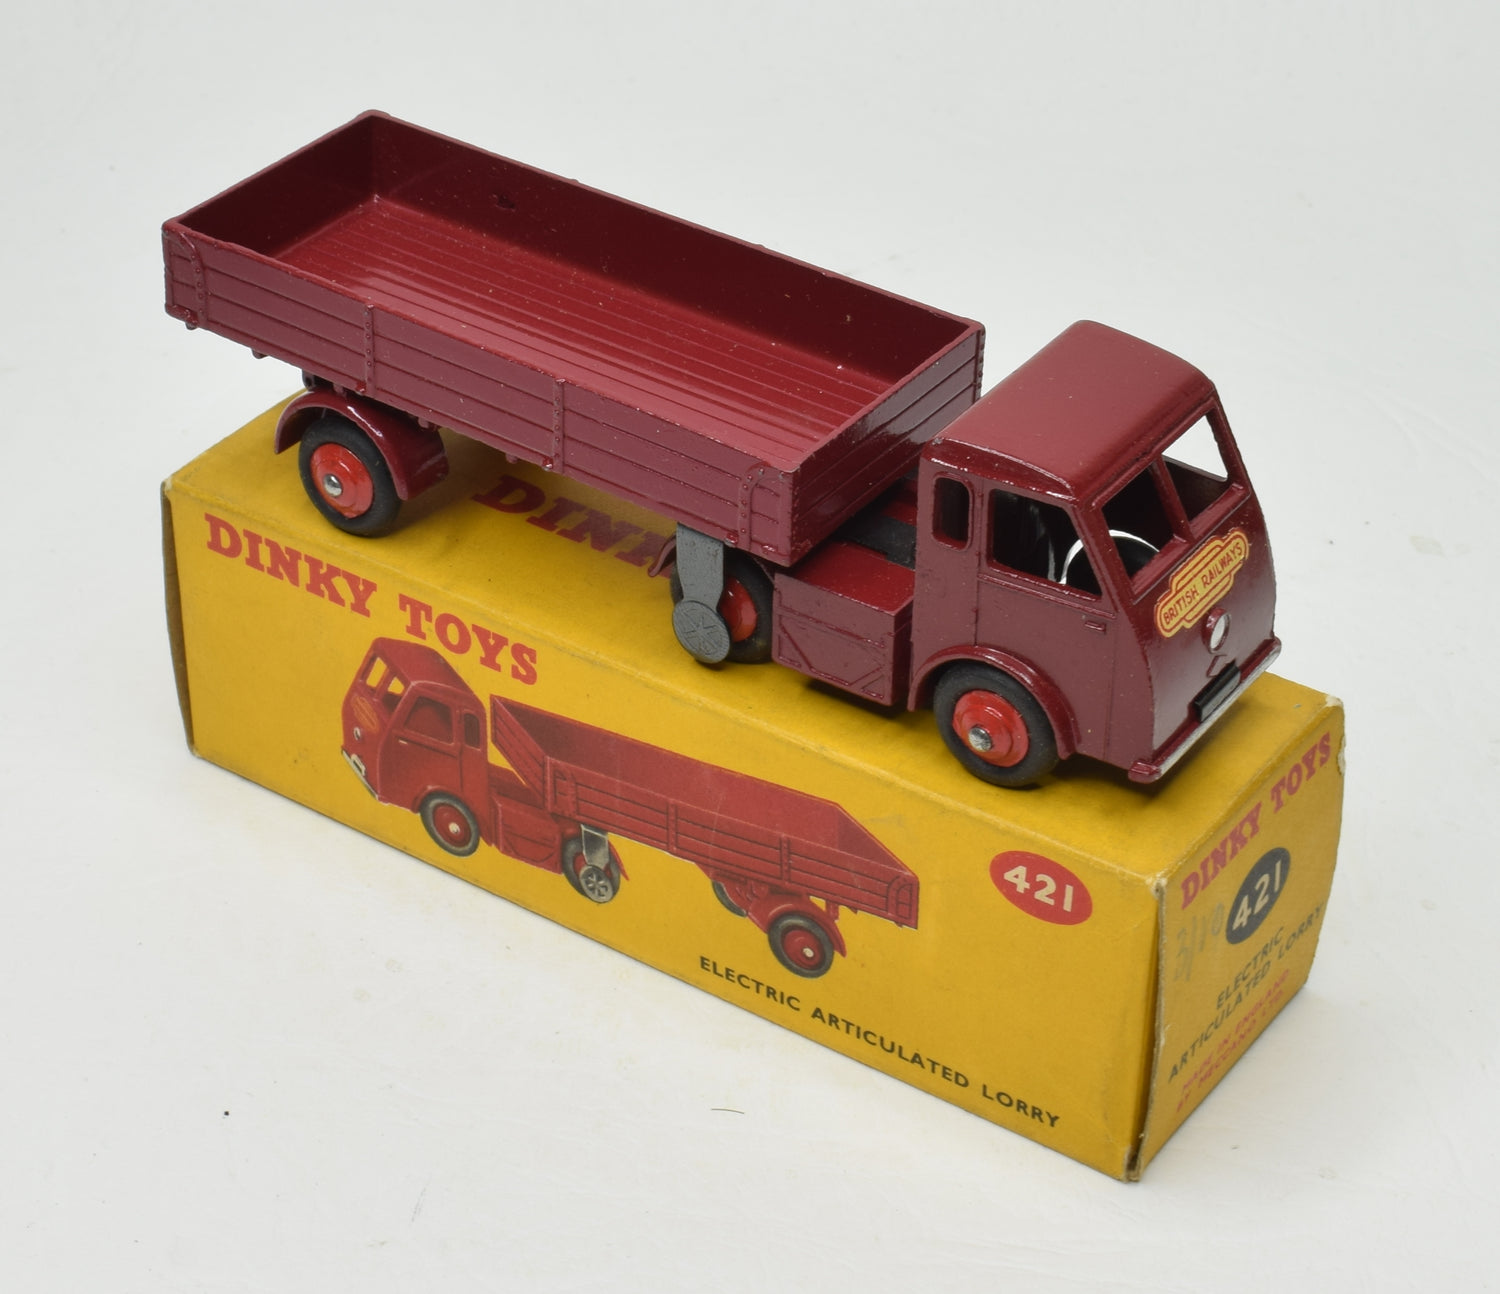 Dinky toys 421 Electric 'British Railways' Lorry Very Near Mint/Boxed 'Brecon' Collection Part 2